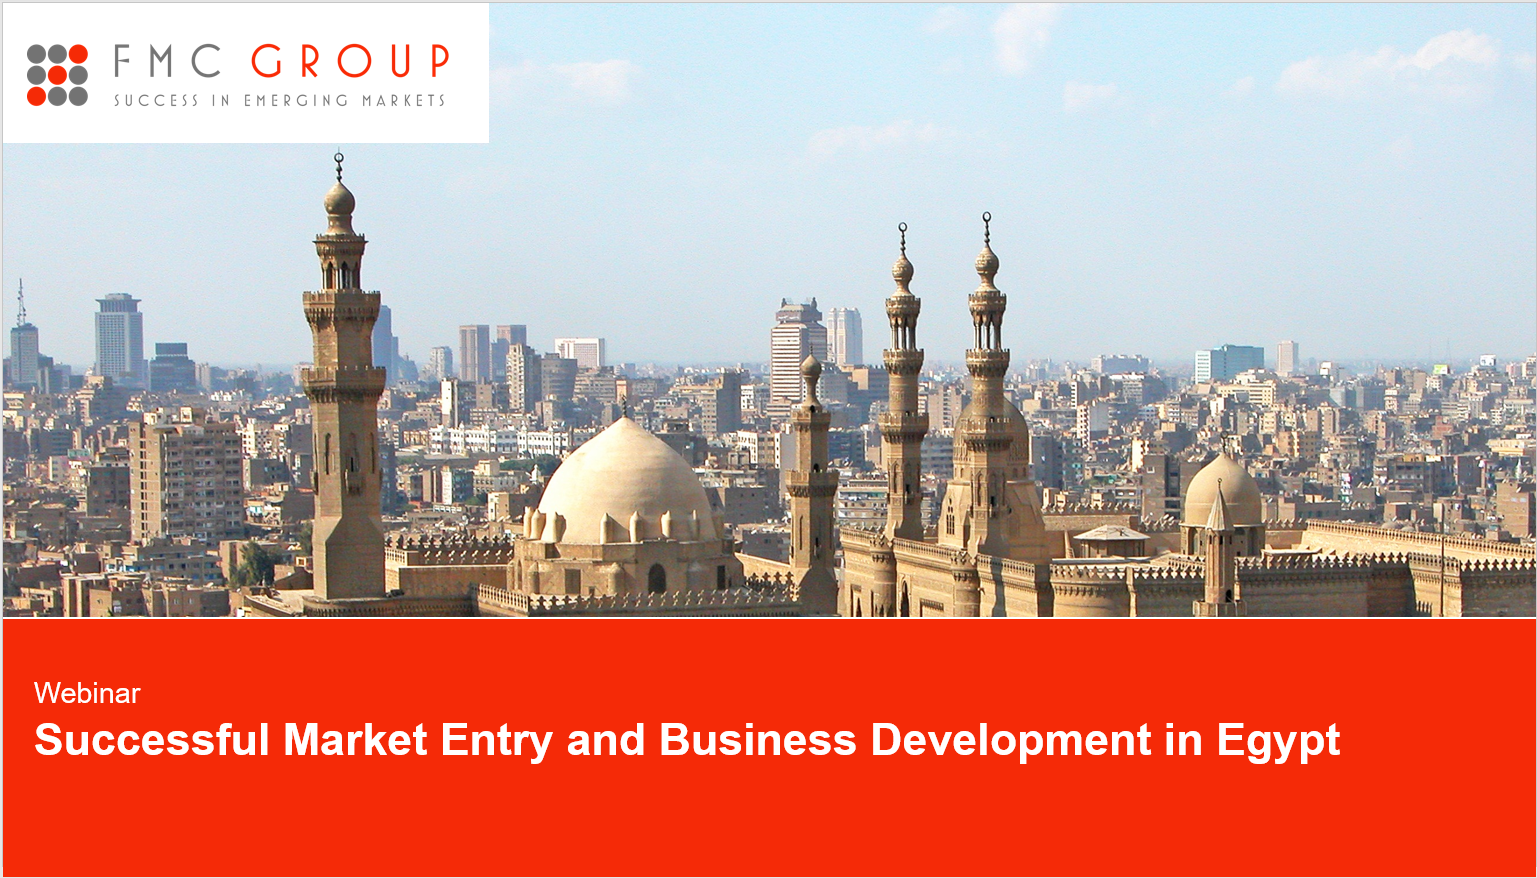 """cover page of webinar """"Successful Market Entry and Business Development in Egypt"""""""